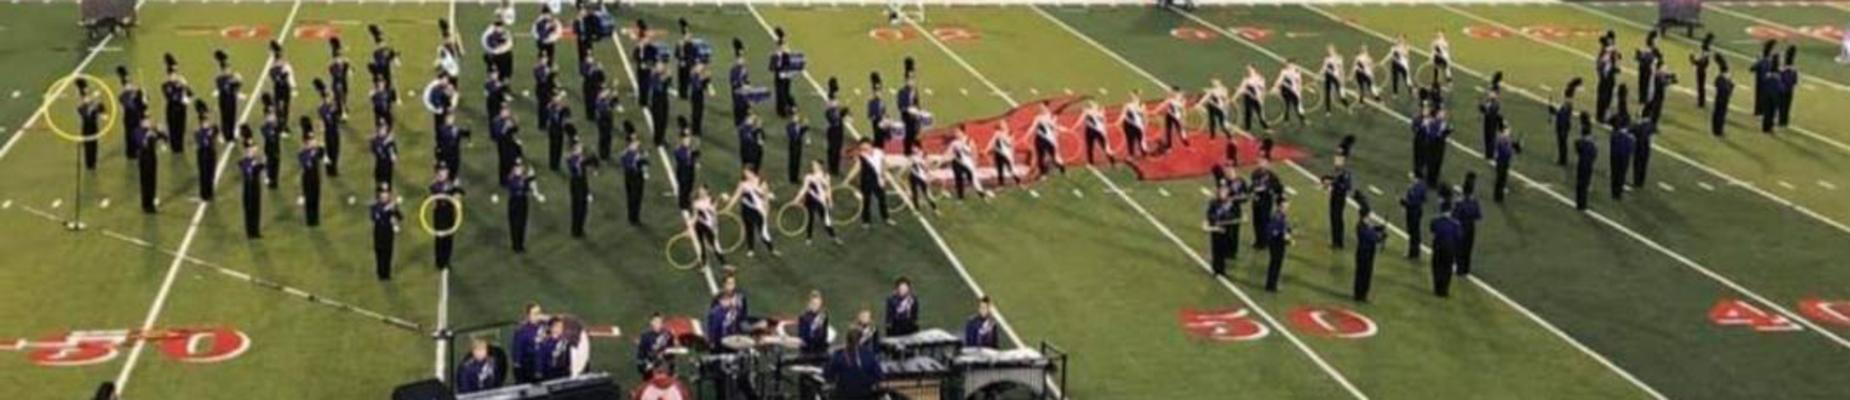 PHHS Pride of the Hill